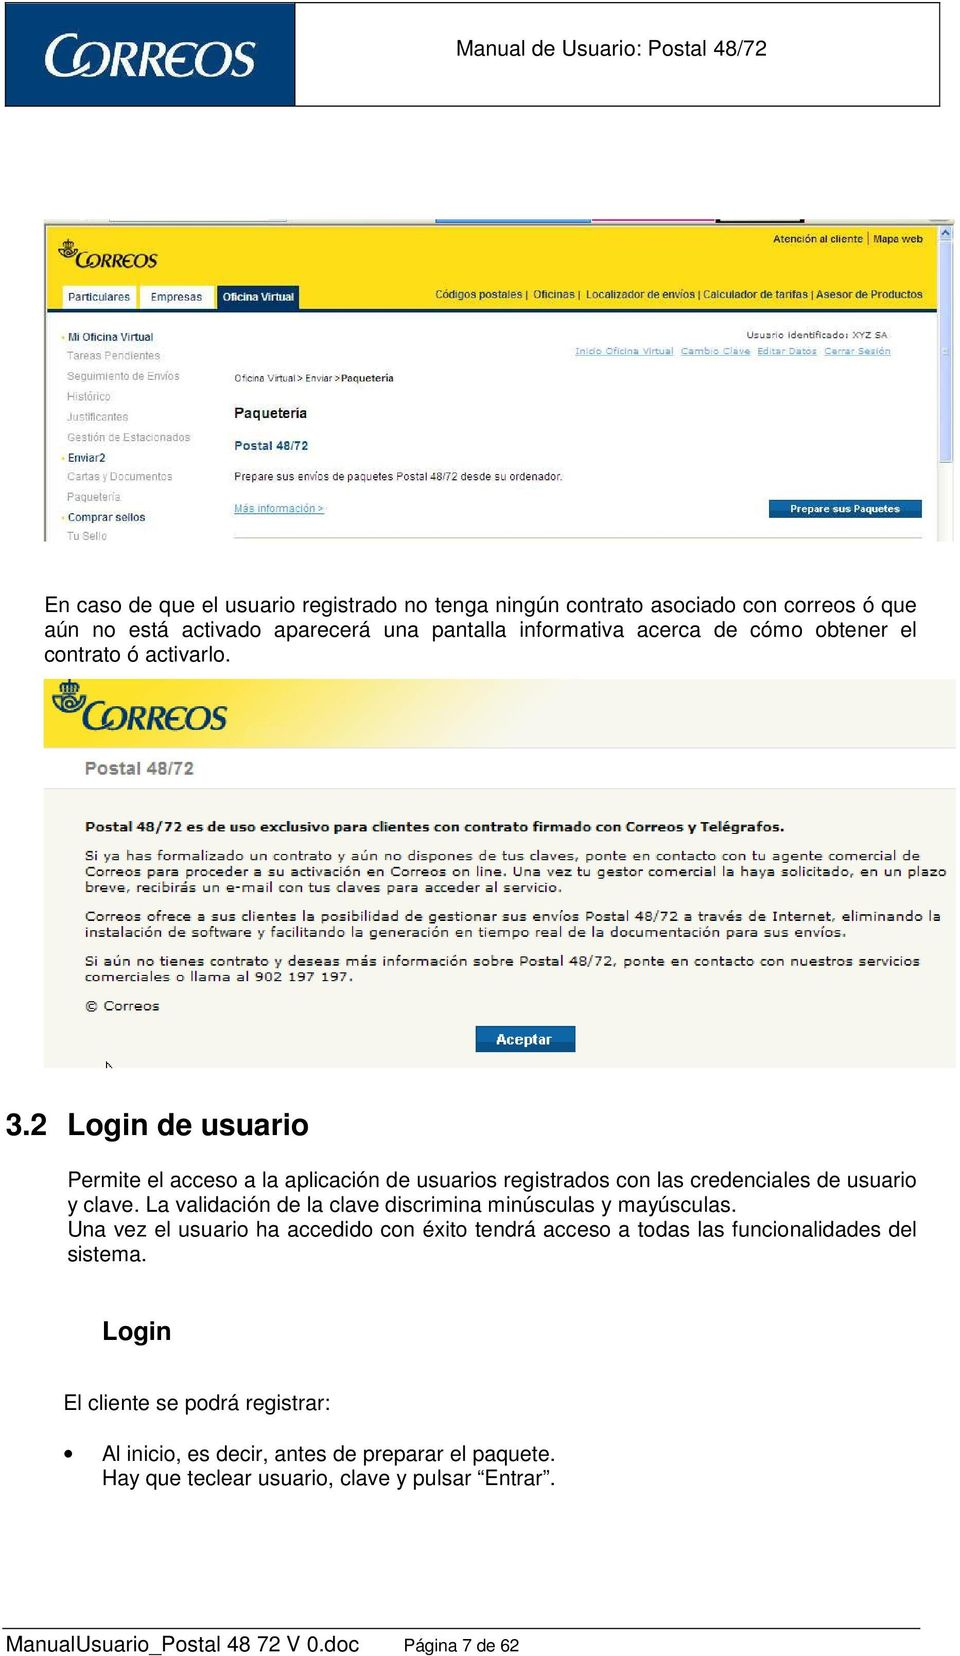 Manual de usuario postal 48 72 oficina virtual de correos for Oficina virtual correos